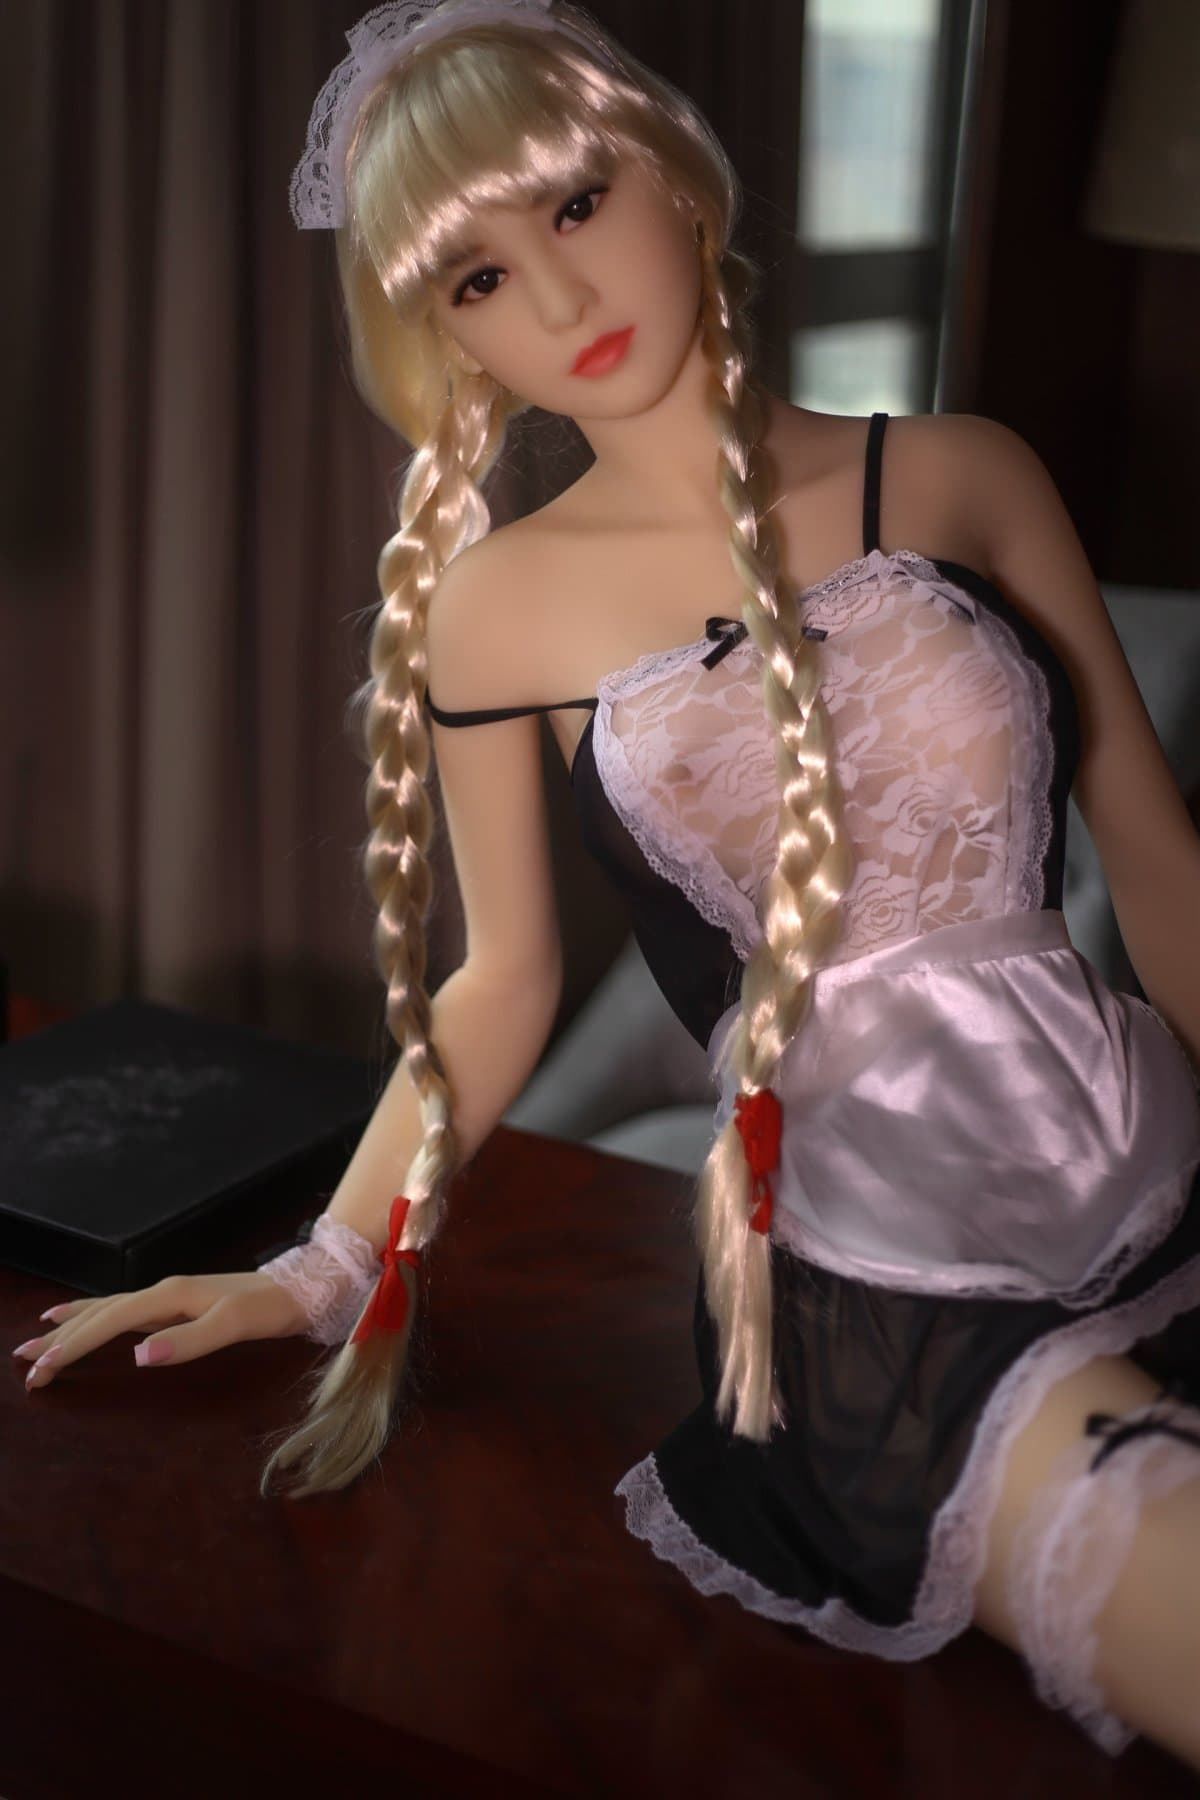 ariel 165cm blonde japanese medium tits skinny tpe wm asian sex doll(2)